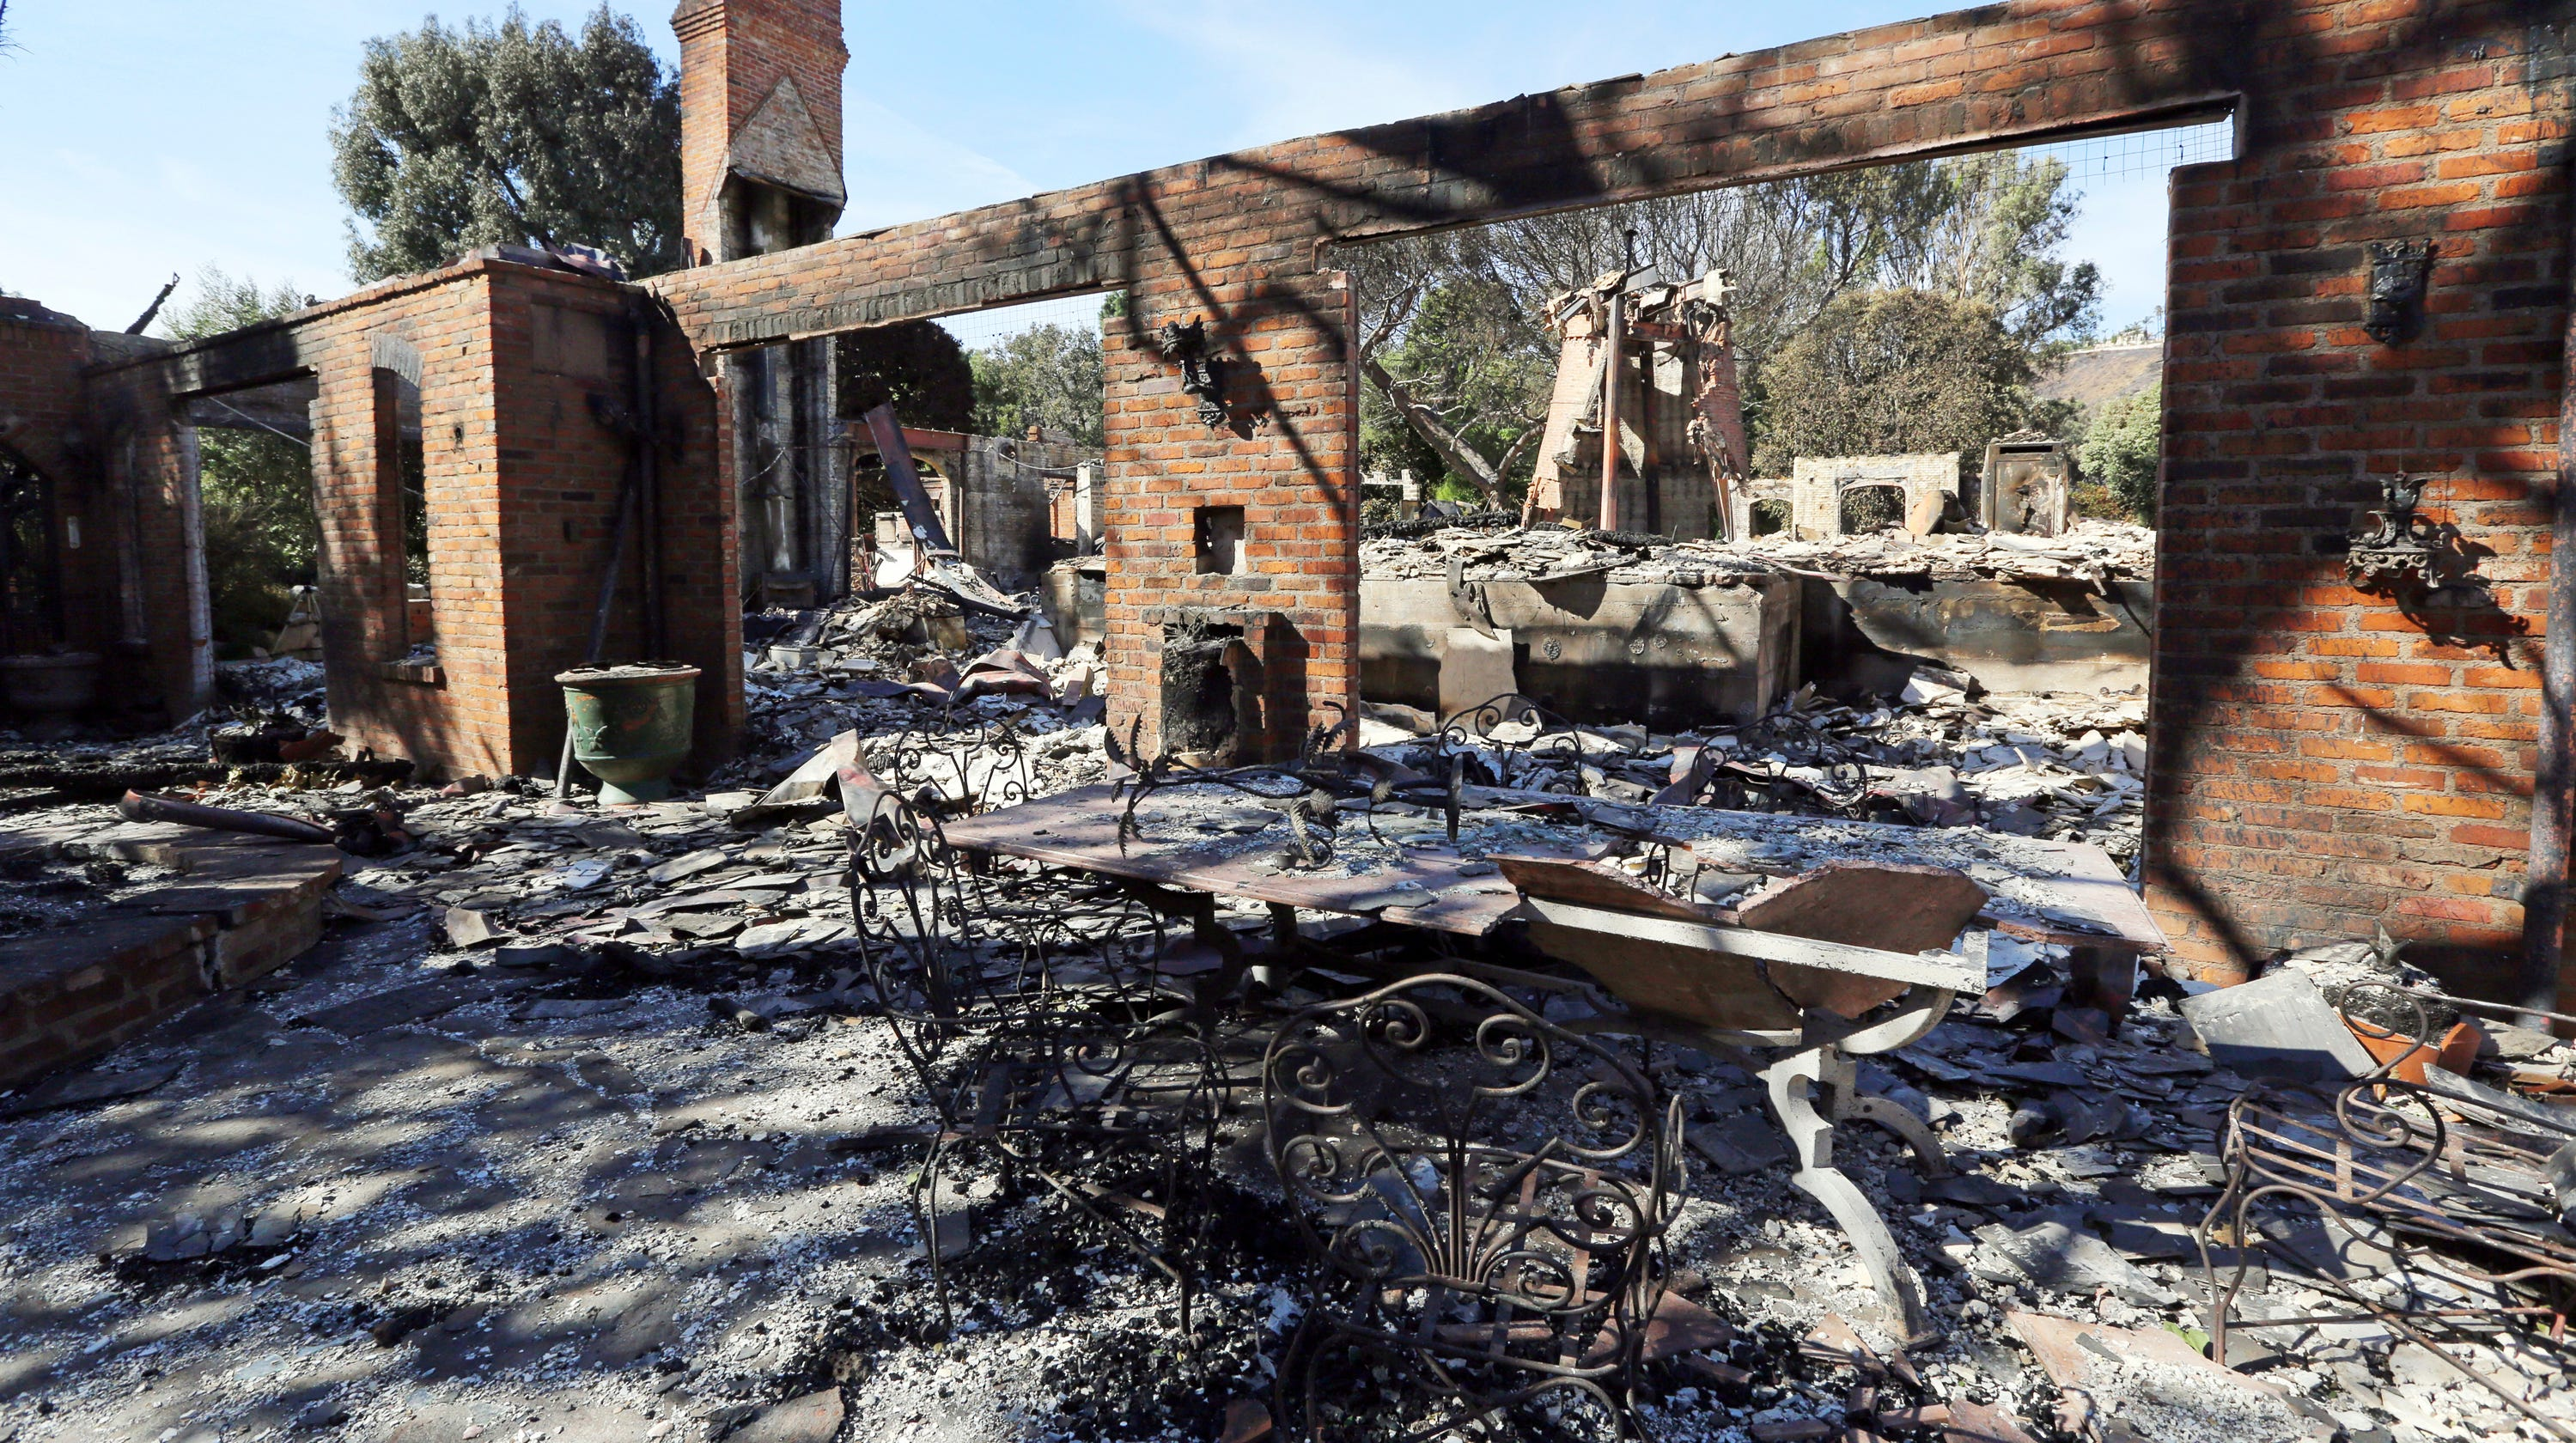 At least 76 people perished, and hundreds are unaccounted for in the California wildfires.